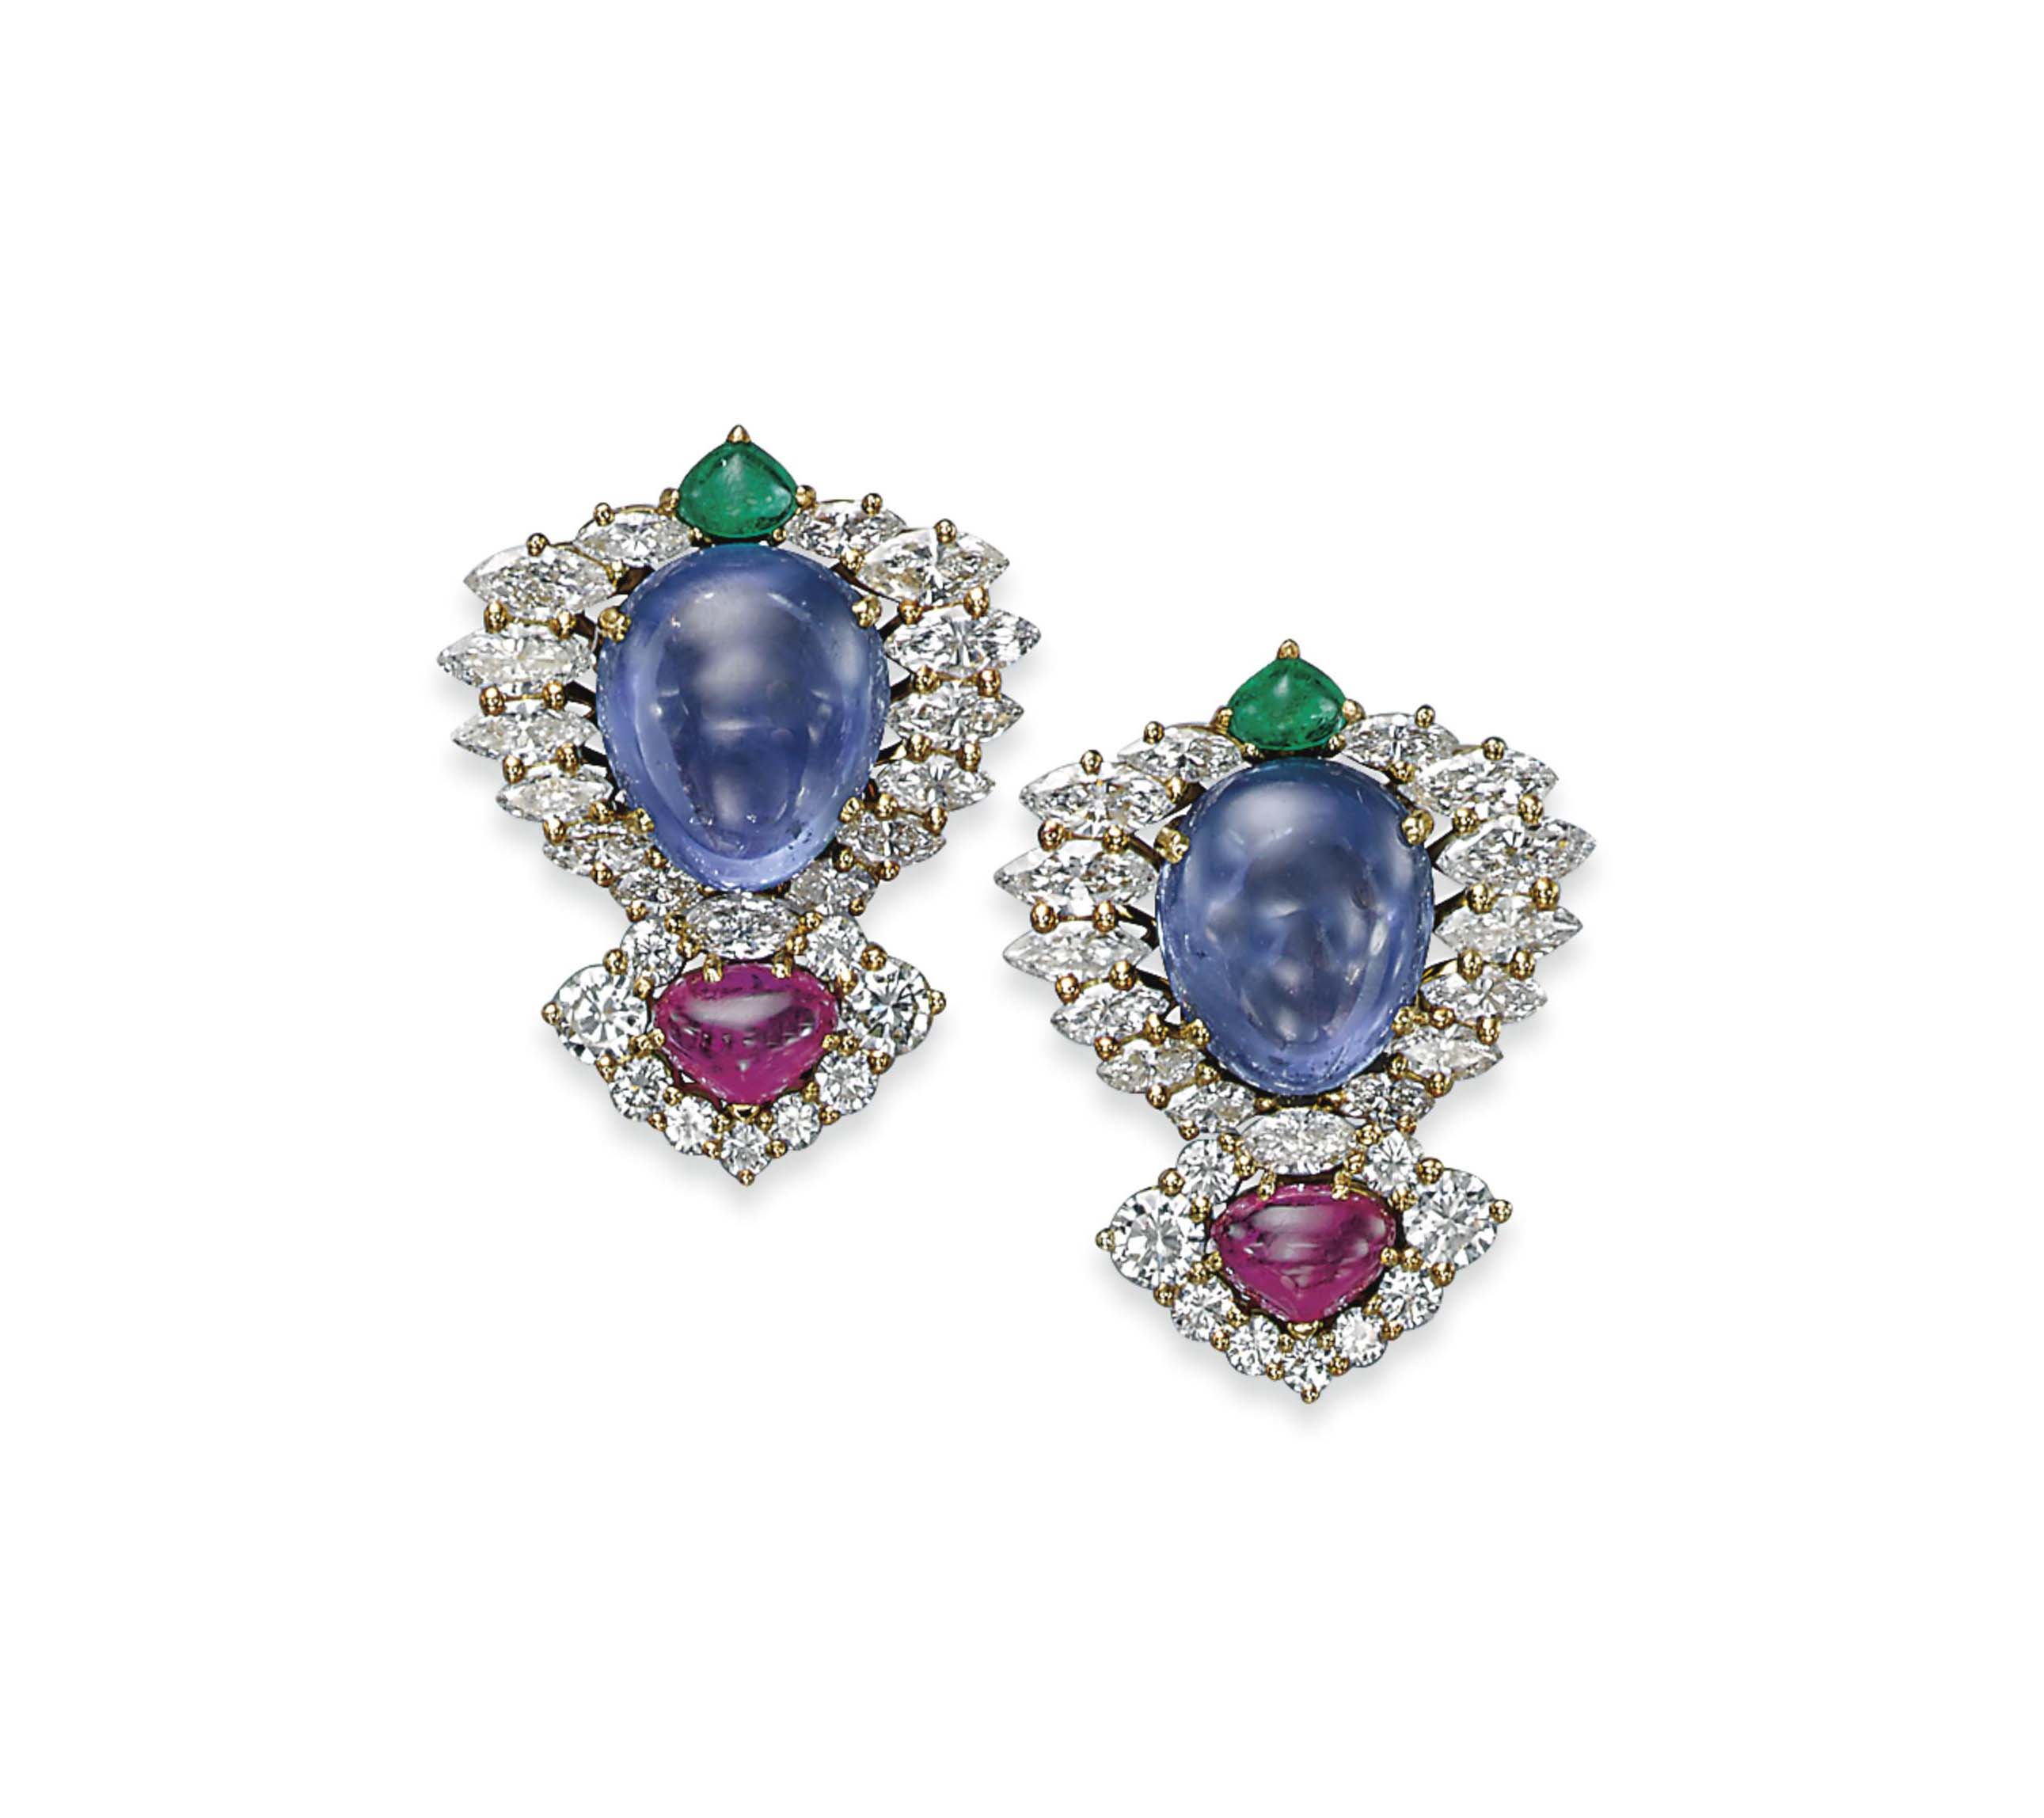 A PAIR OF SAPPHIRE, EMERALD, RUBY AND DIAMOND 'FRANCESCA' EAR CLIPS, BY MARINA B.